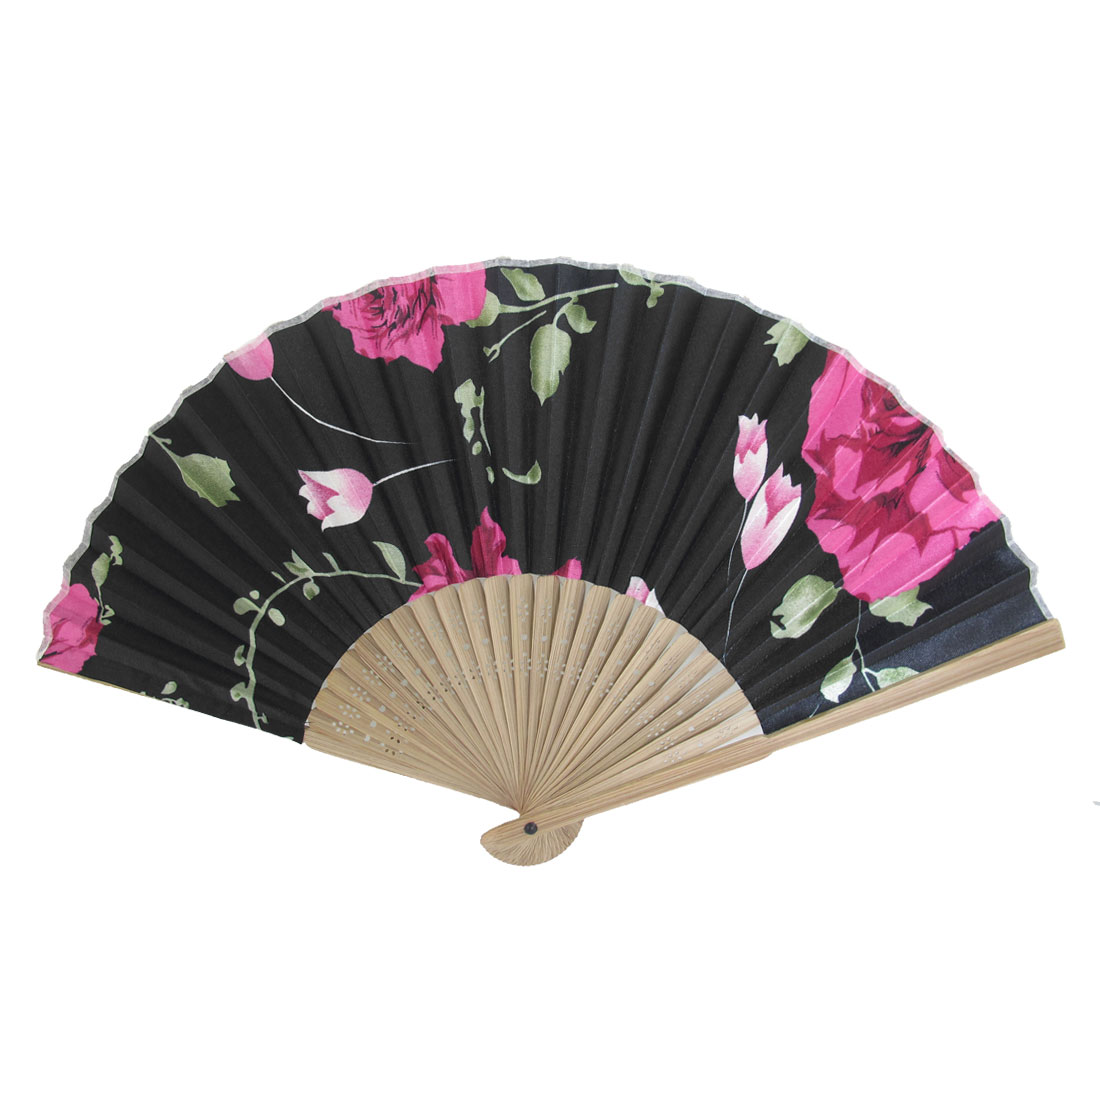 Brown Bamboo Frame Flower Printed Fabric Portable Foldable Hand Fan Black Red